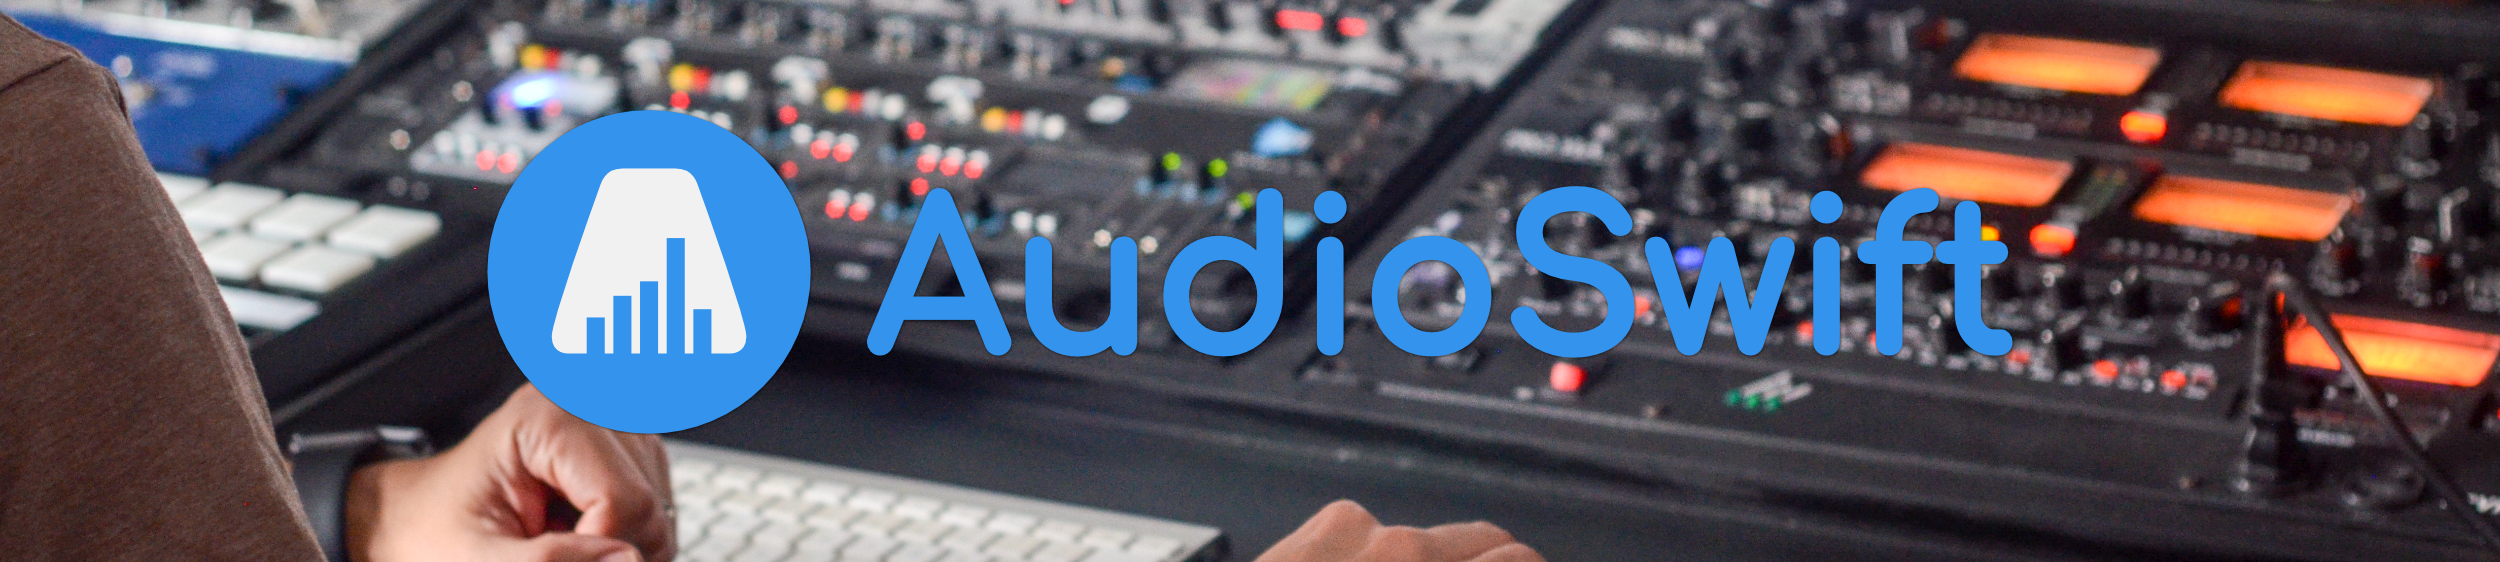 AudioSwift 2—Control, Improve and Create With YourTrackpad